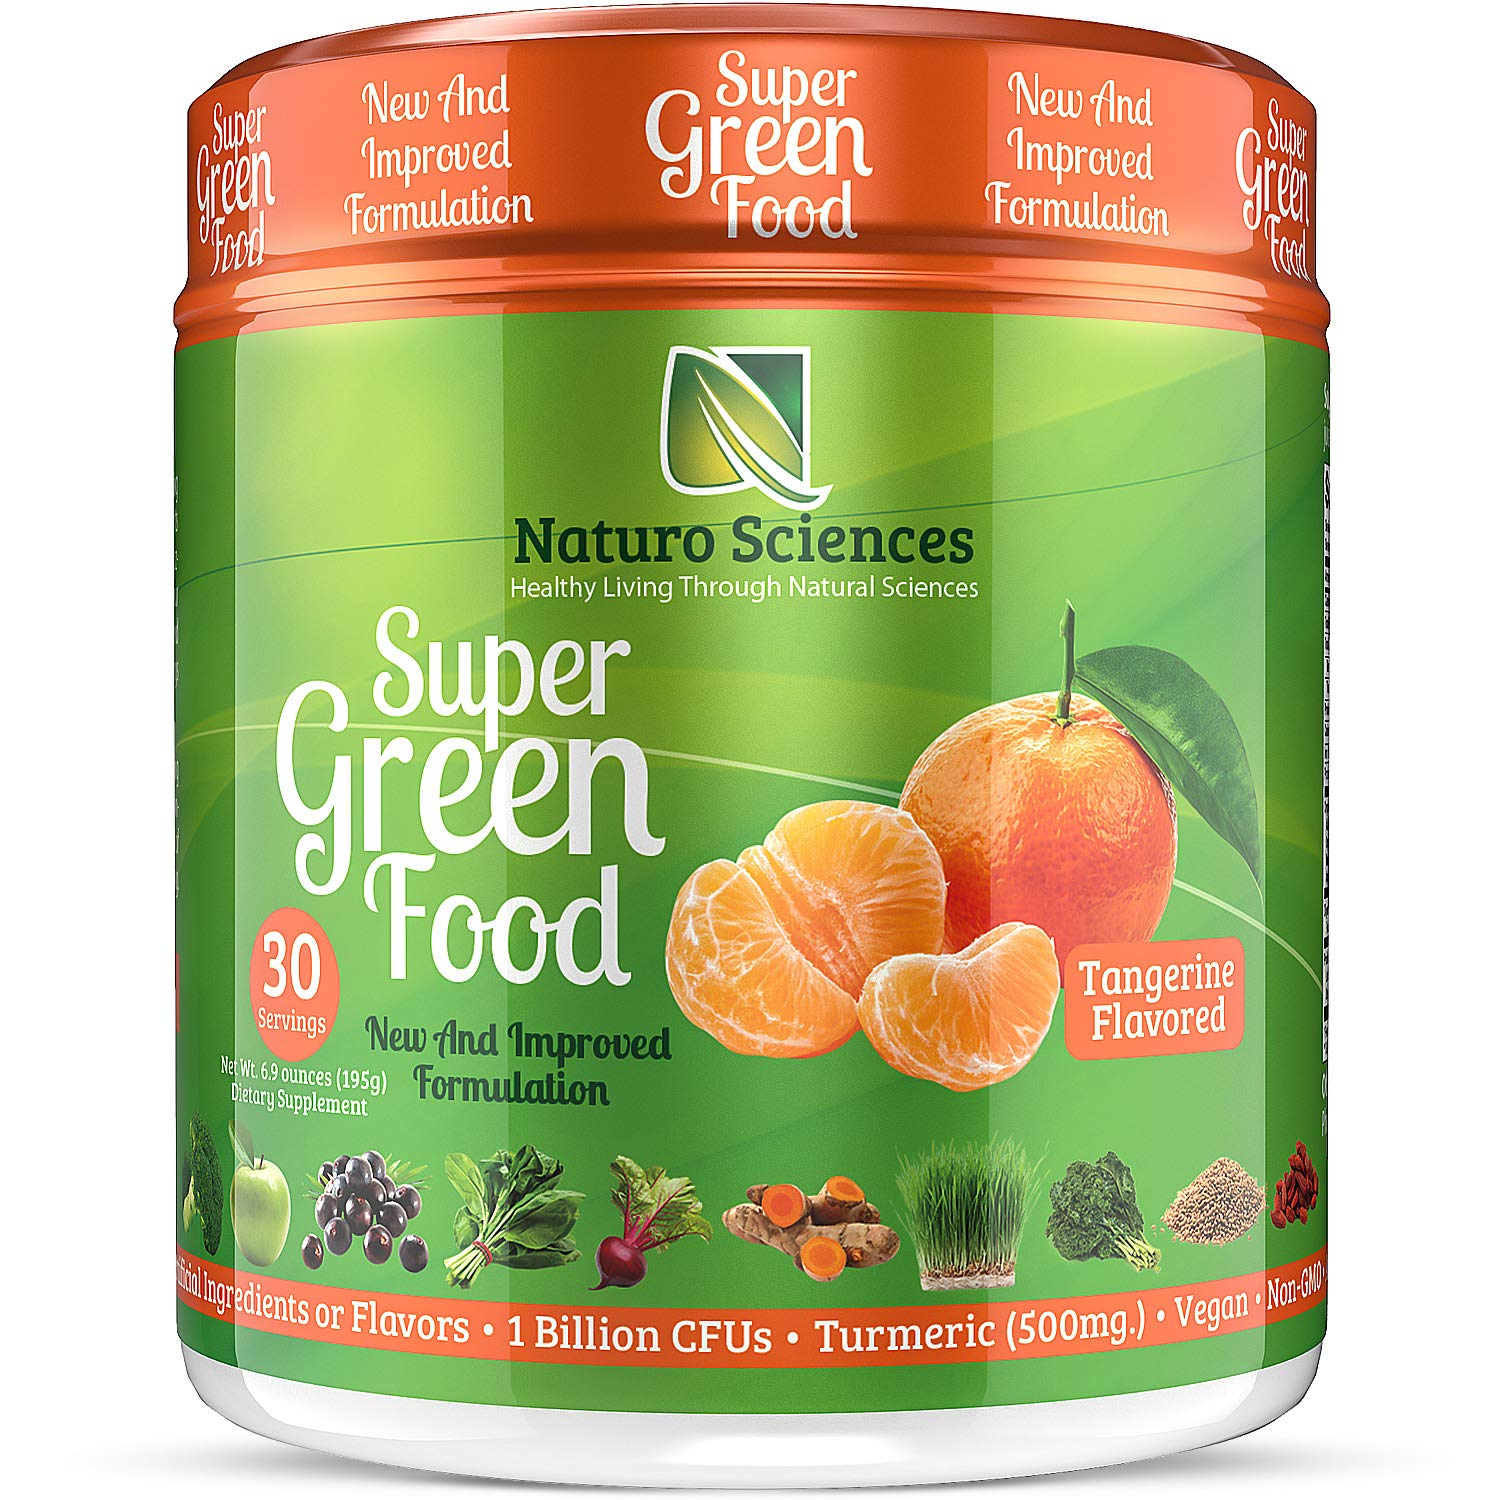 100% Natural Greens Powder, Over 10 Hard to Get Superfoods, Greens Supplement Powder 1 Month's Supply, Green Organic Blend with 1 Billion CFU Probiotics and 500mg Turmeric, Tangerine Flavor, 30 Svgs. by Naturo Sciences